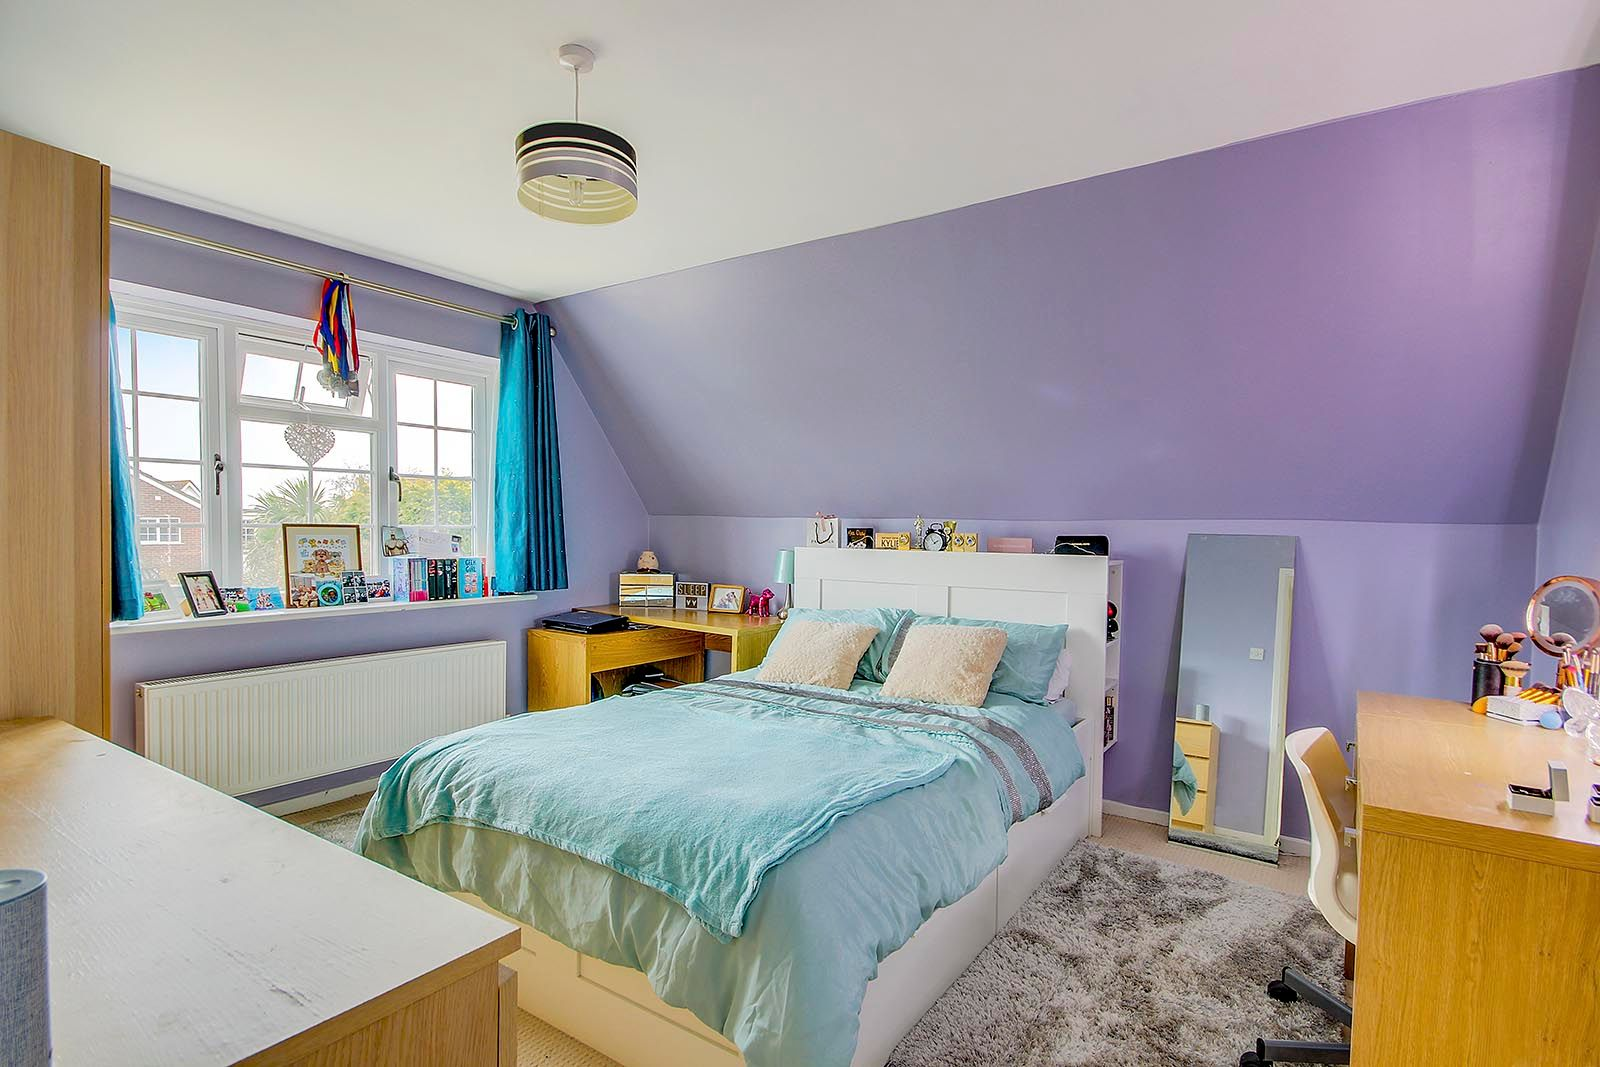 3 bed house for sale in Woodlands Close (COMP AUG 19) 15